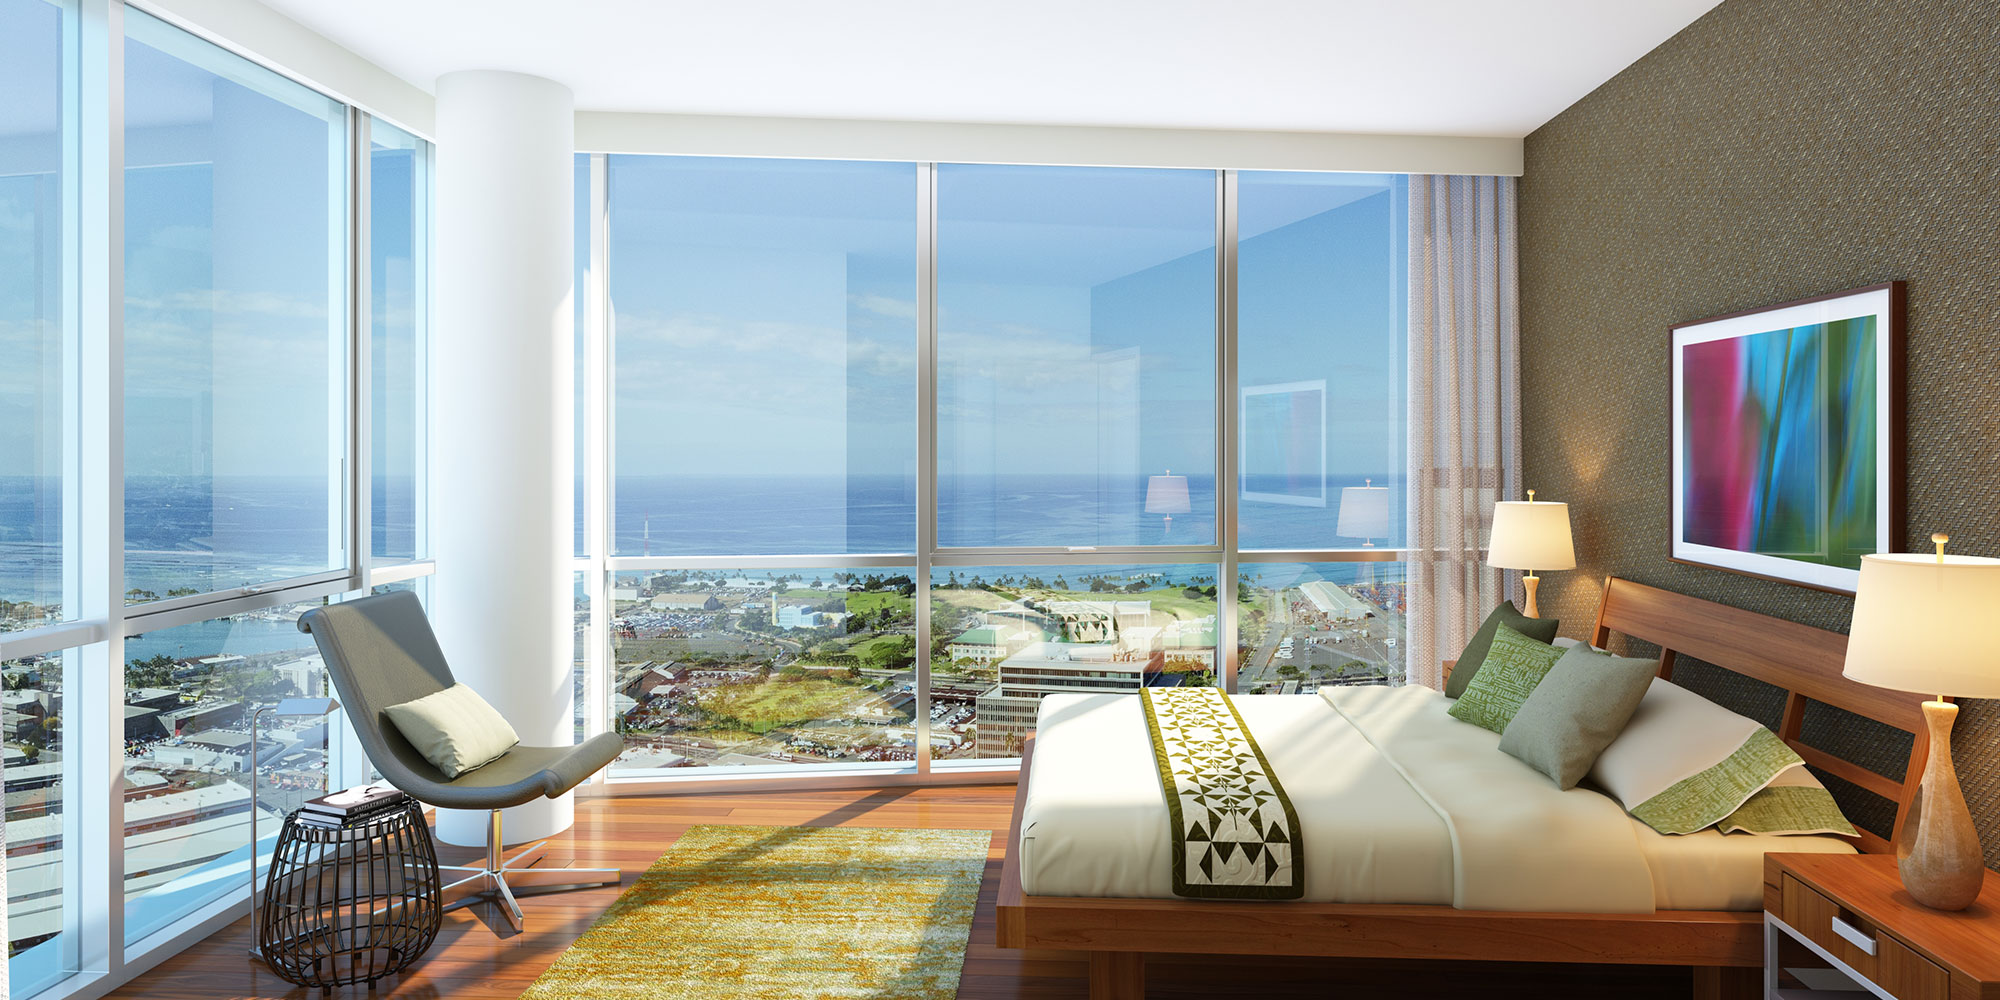 Keahou Place honolulu condo interior photo